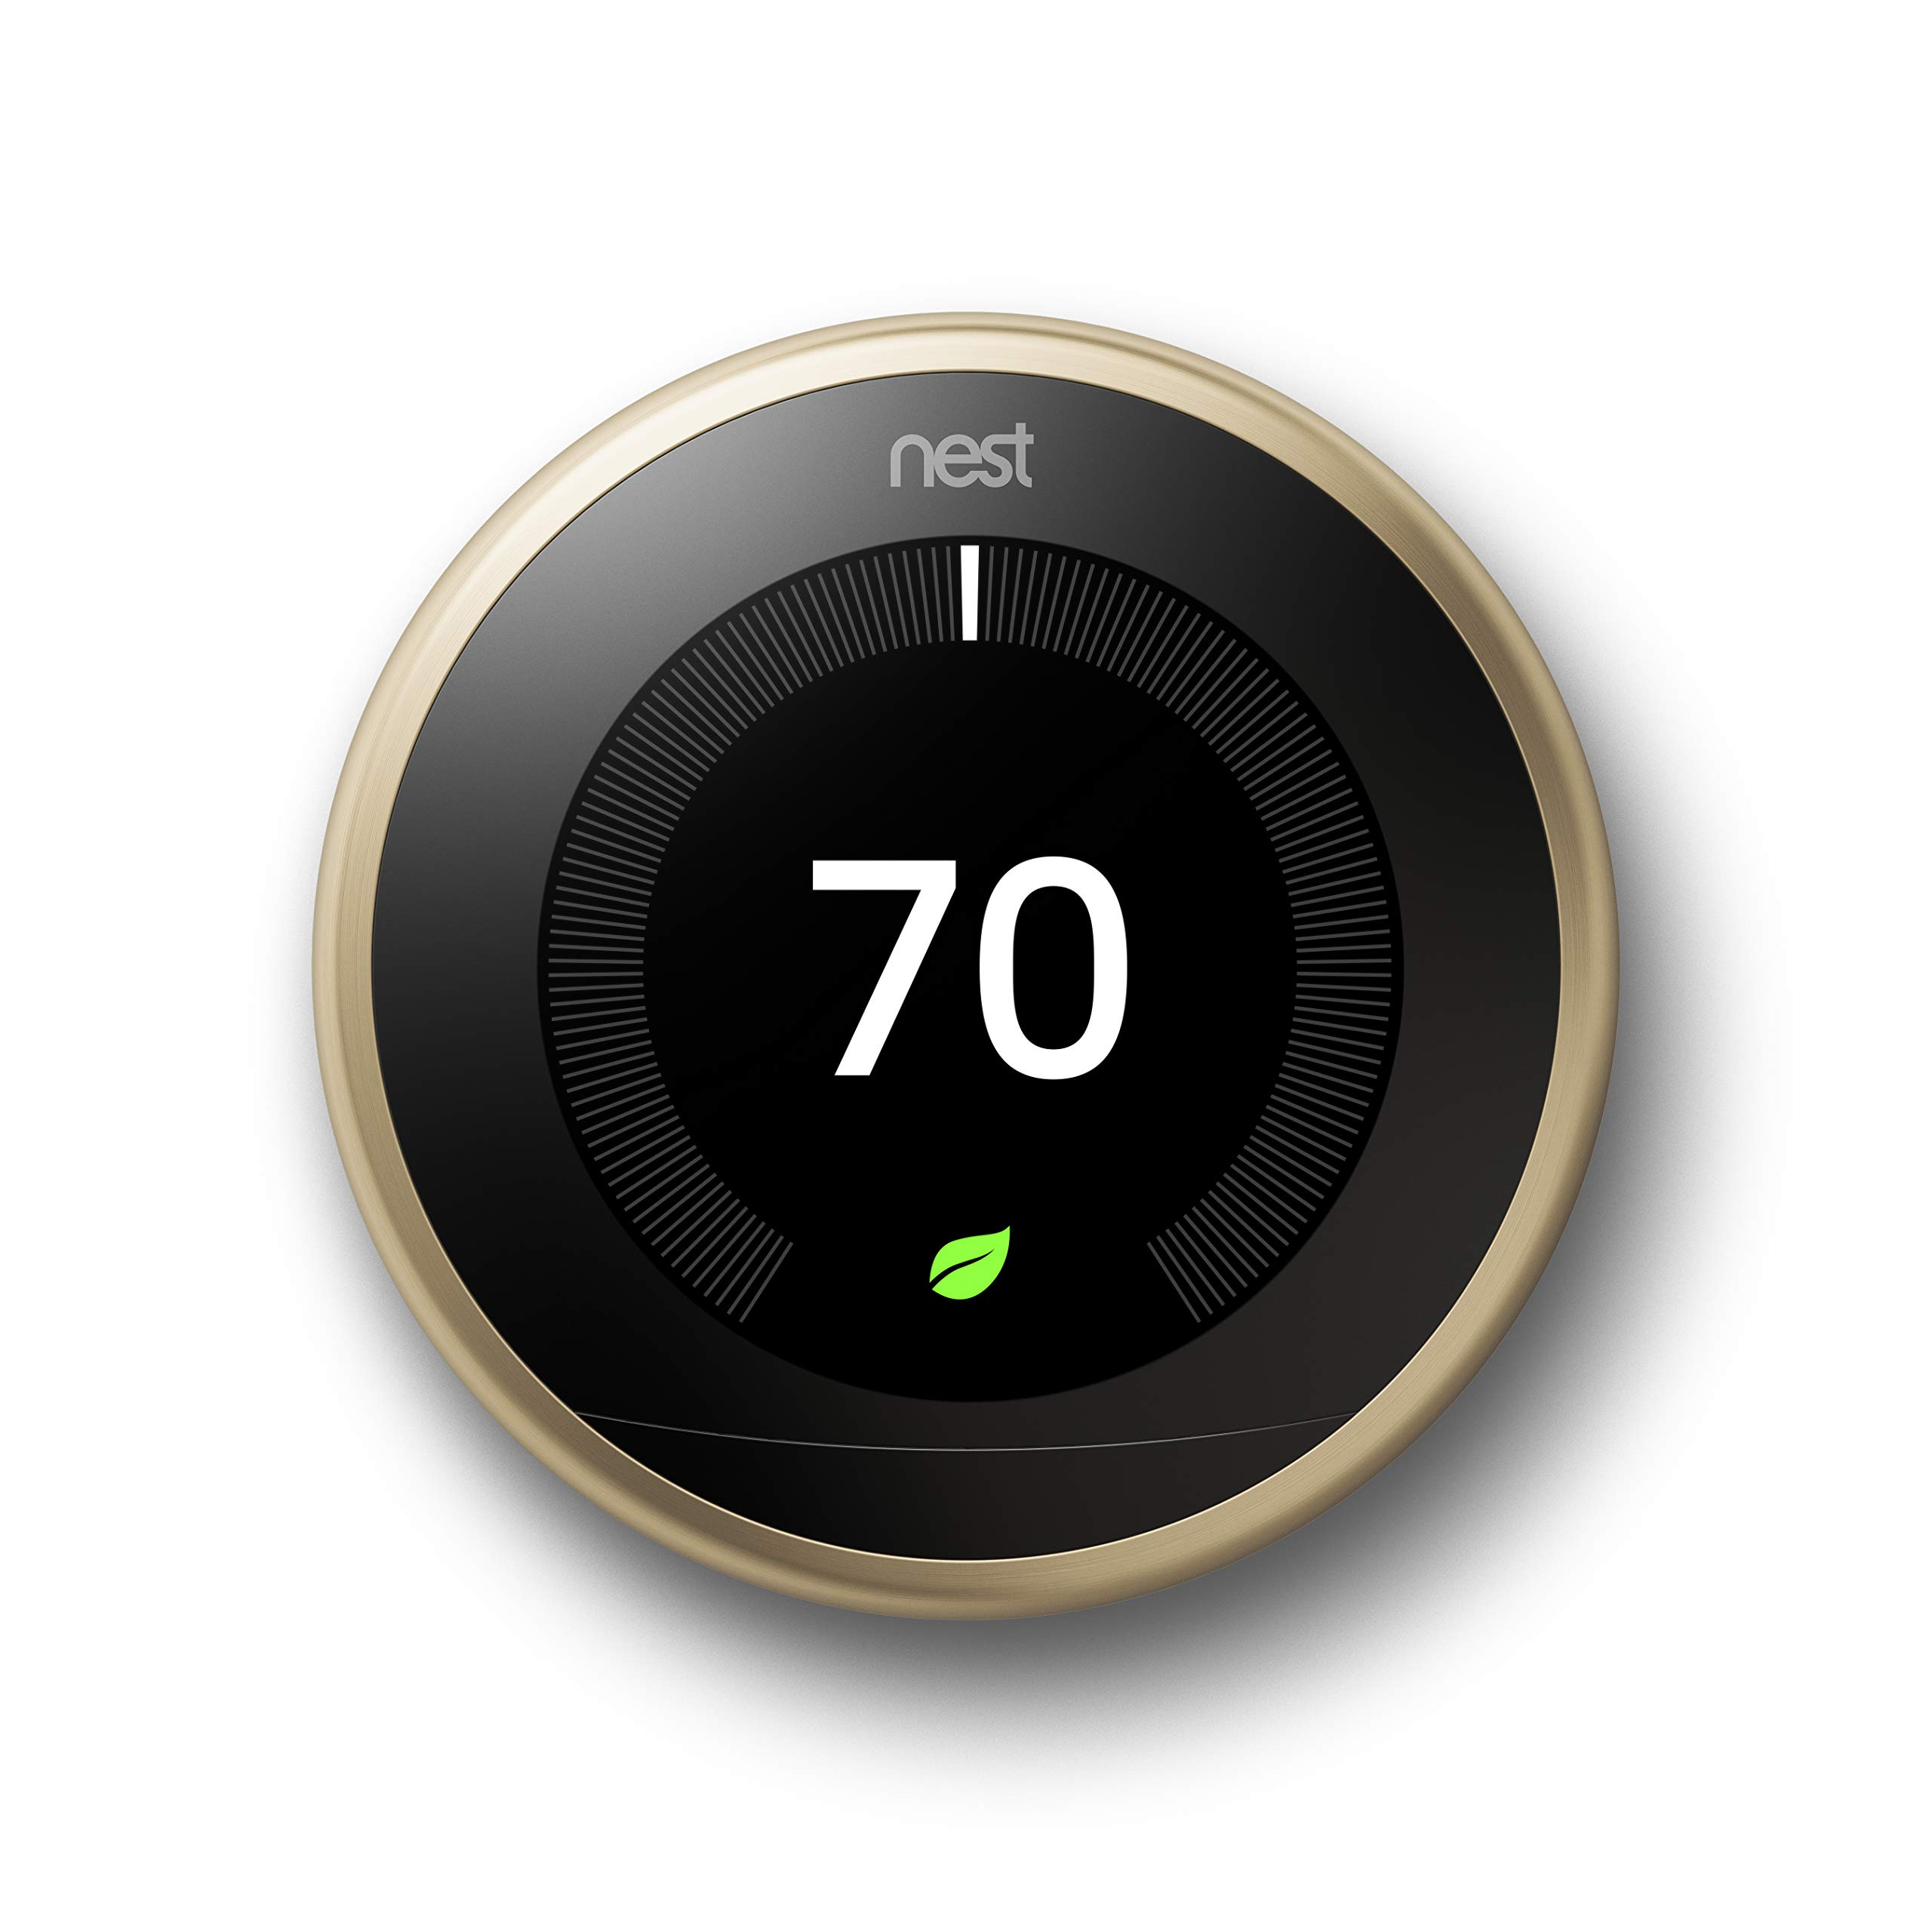 Google, T3032US, Nest Learning Thermostat, 3rd Gen, Smart Thermostat, Brass, Works With Alexa by Google